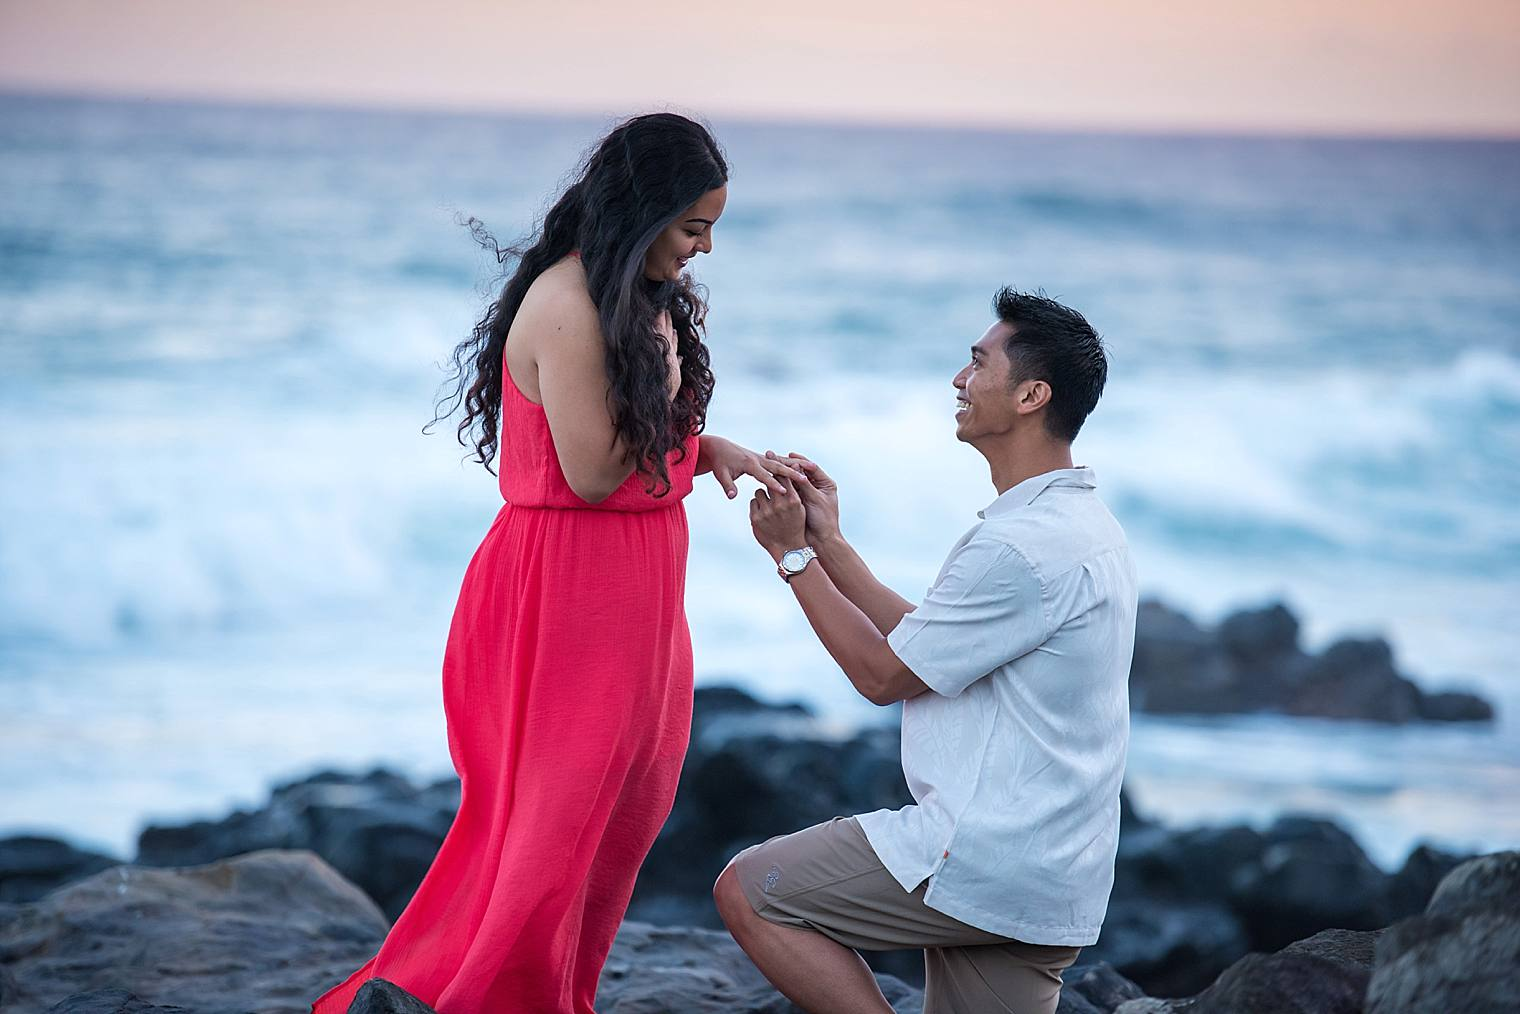 putting ring on finger after cliffside proposal